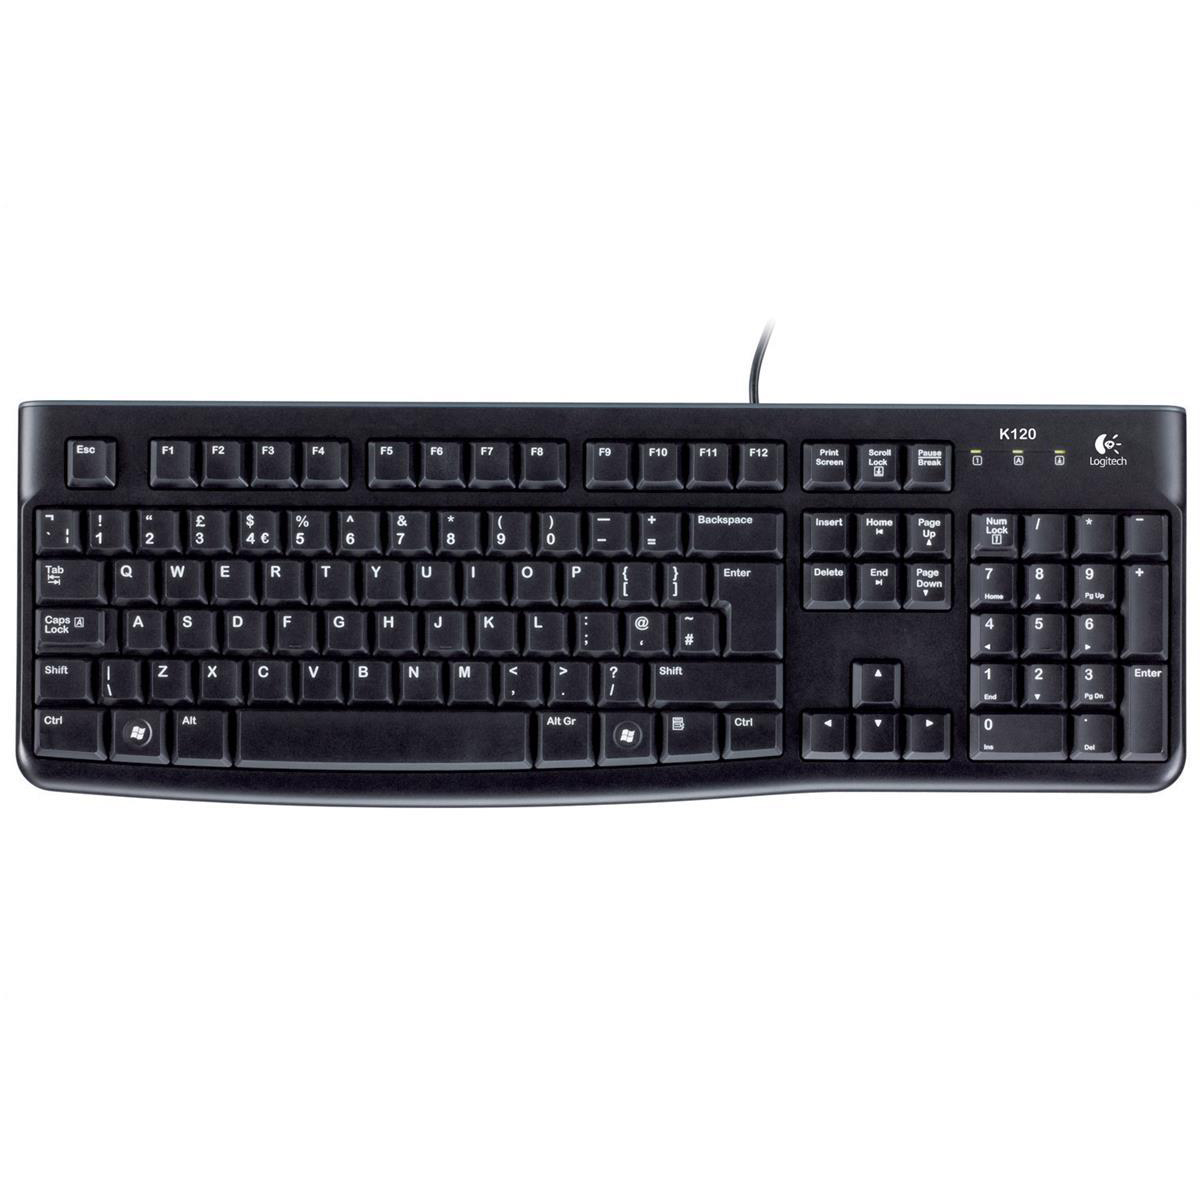 Wired Logitech K120 UK Business Keyboard Wired USB Low-profile Keys Ref 920-002524